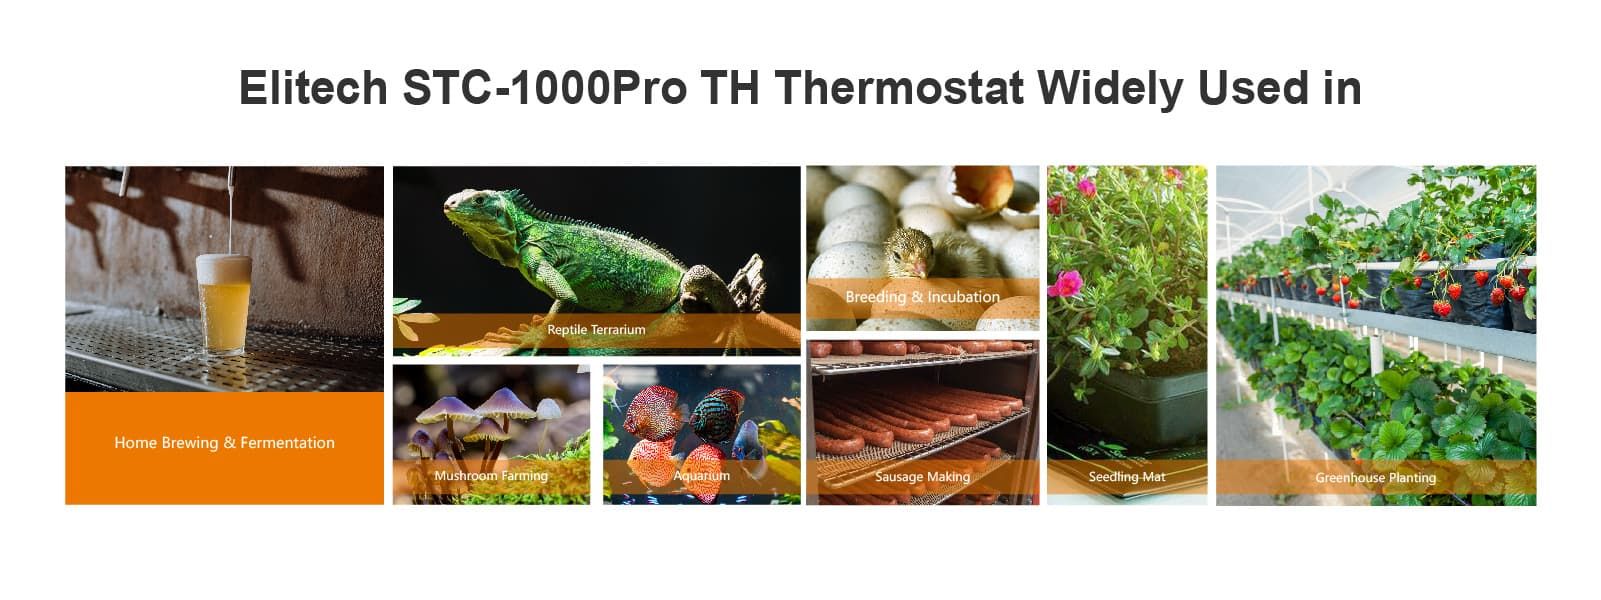 Elitech STC-1000Pro Temperature and Humidity Controller Application-Elitech UK